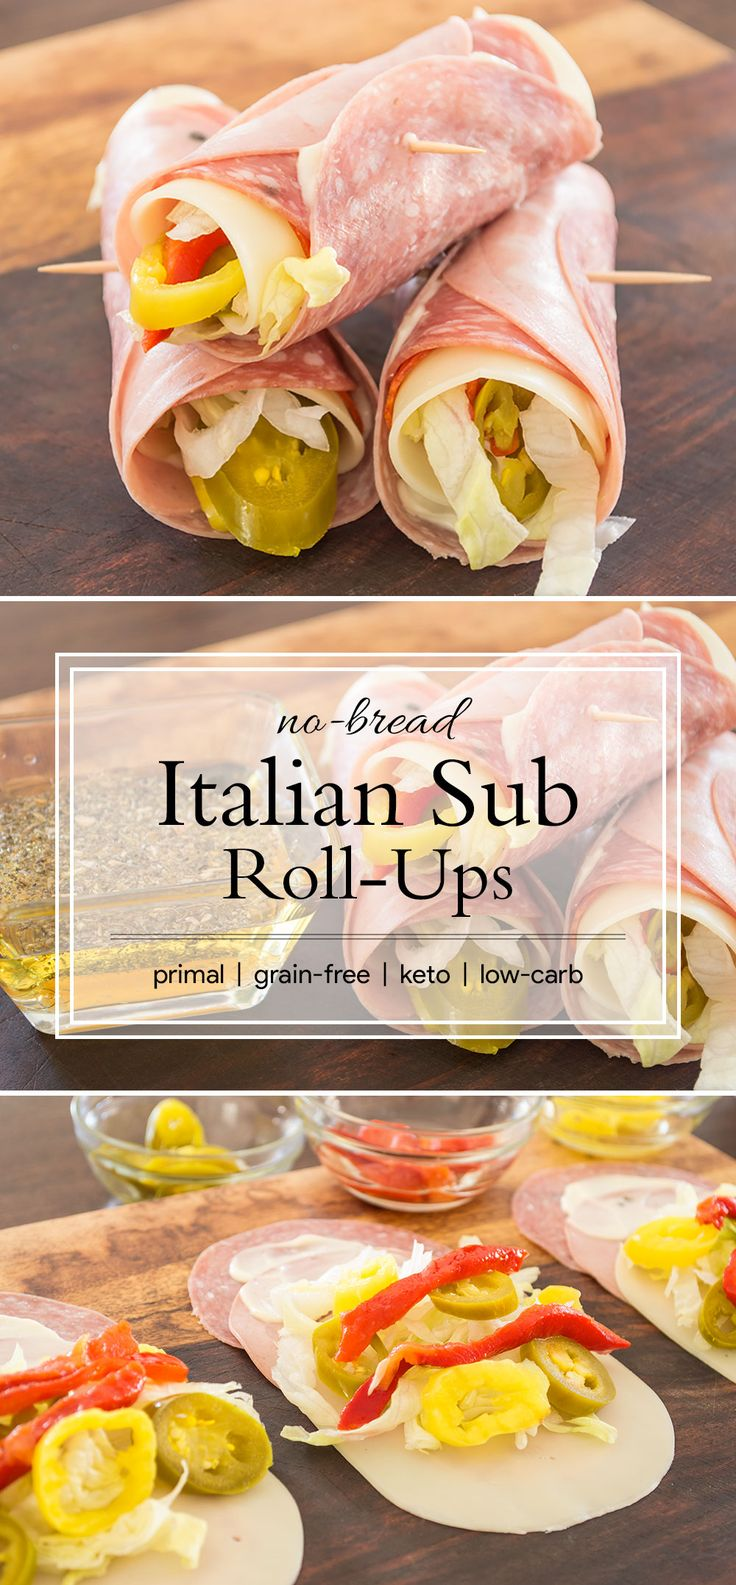 Bread is the least important ingredient of a really delicious Italian sub, so sk...